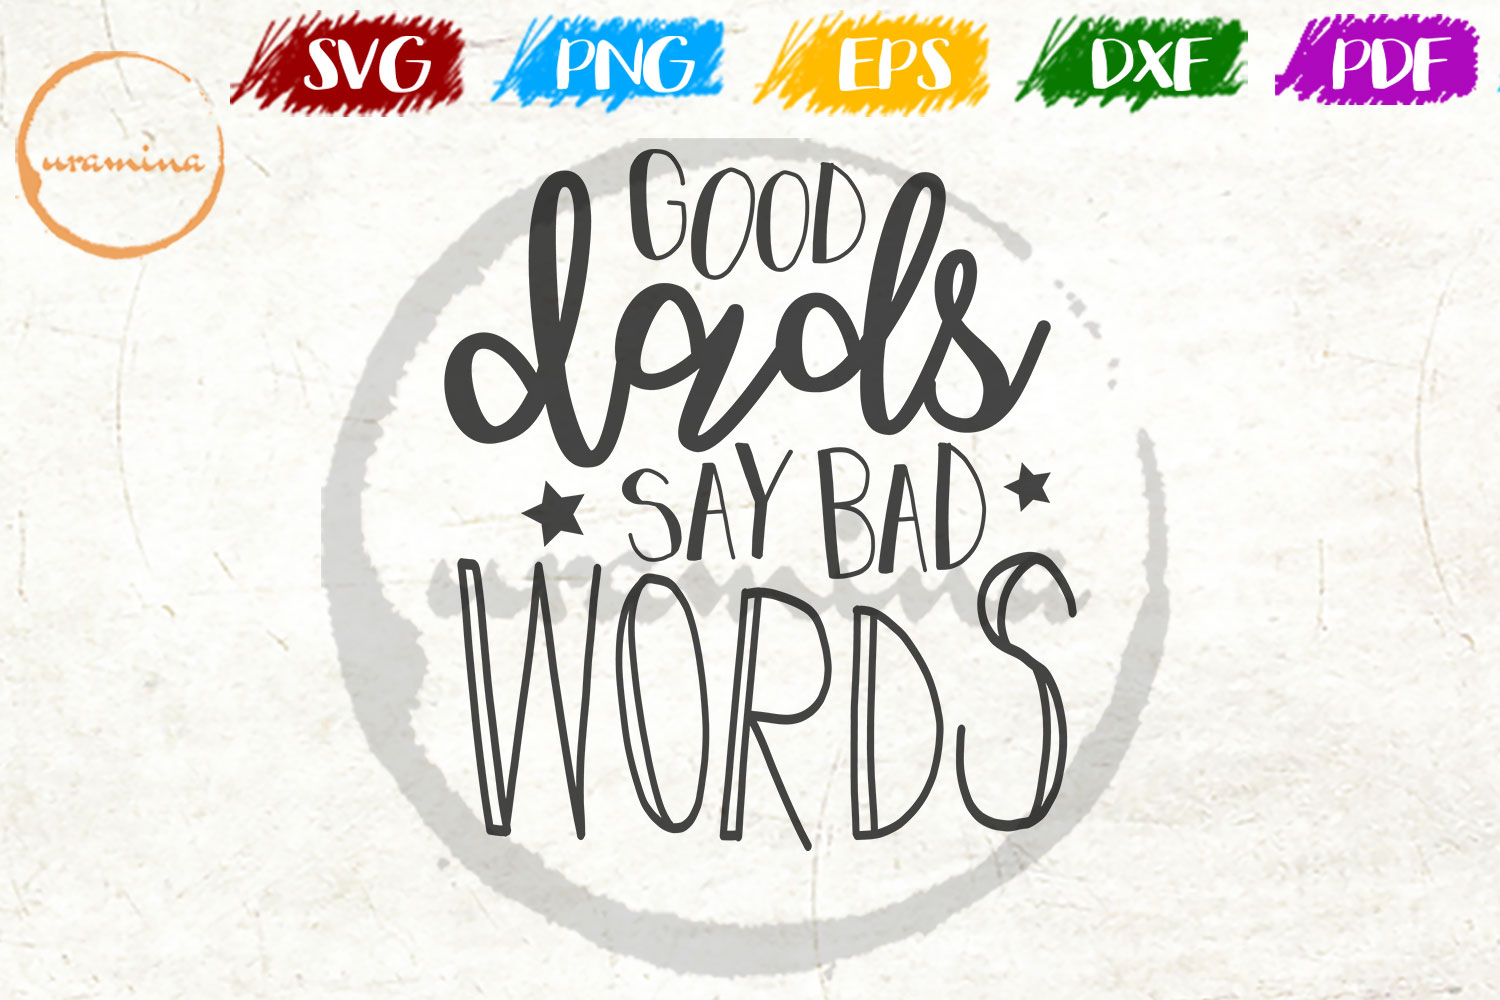 Download Free Good Dads Say Bad Words Graphic By Uramina Creative Fabrica for Cricut Explore, Silhouette and other cutting machines.